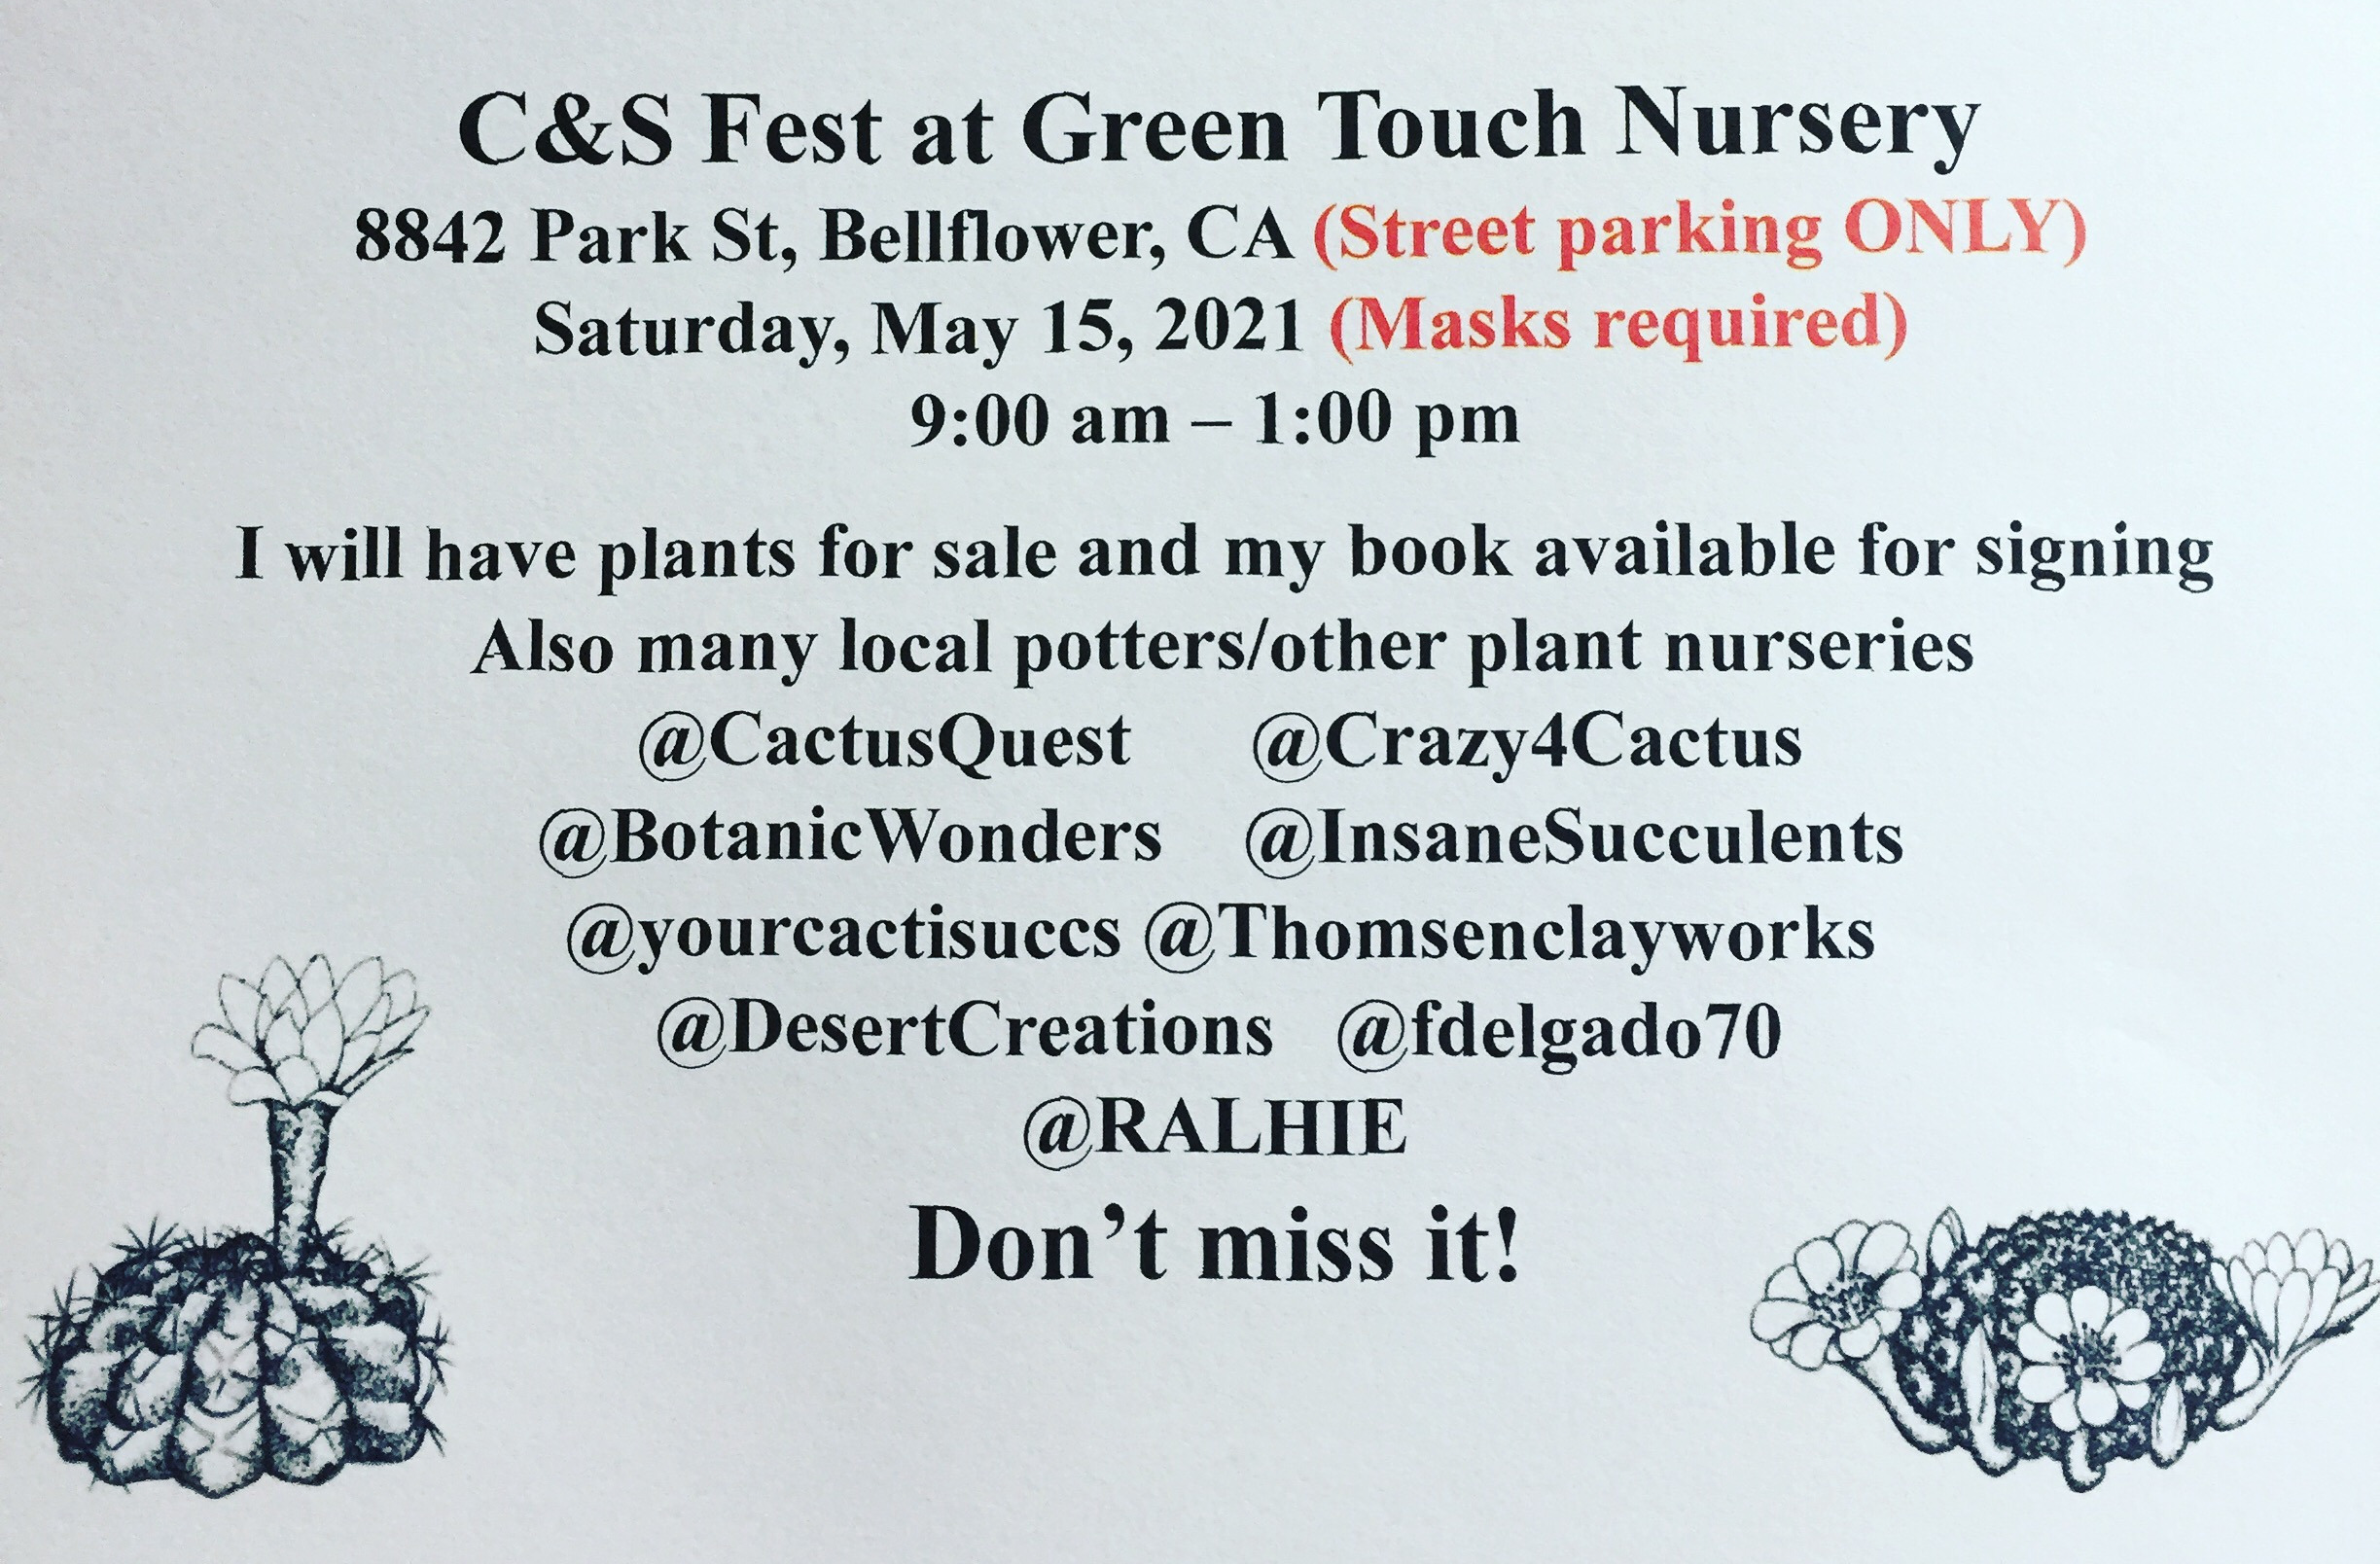 C&S Fest at Green Touch Nursery